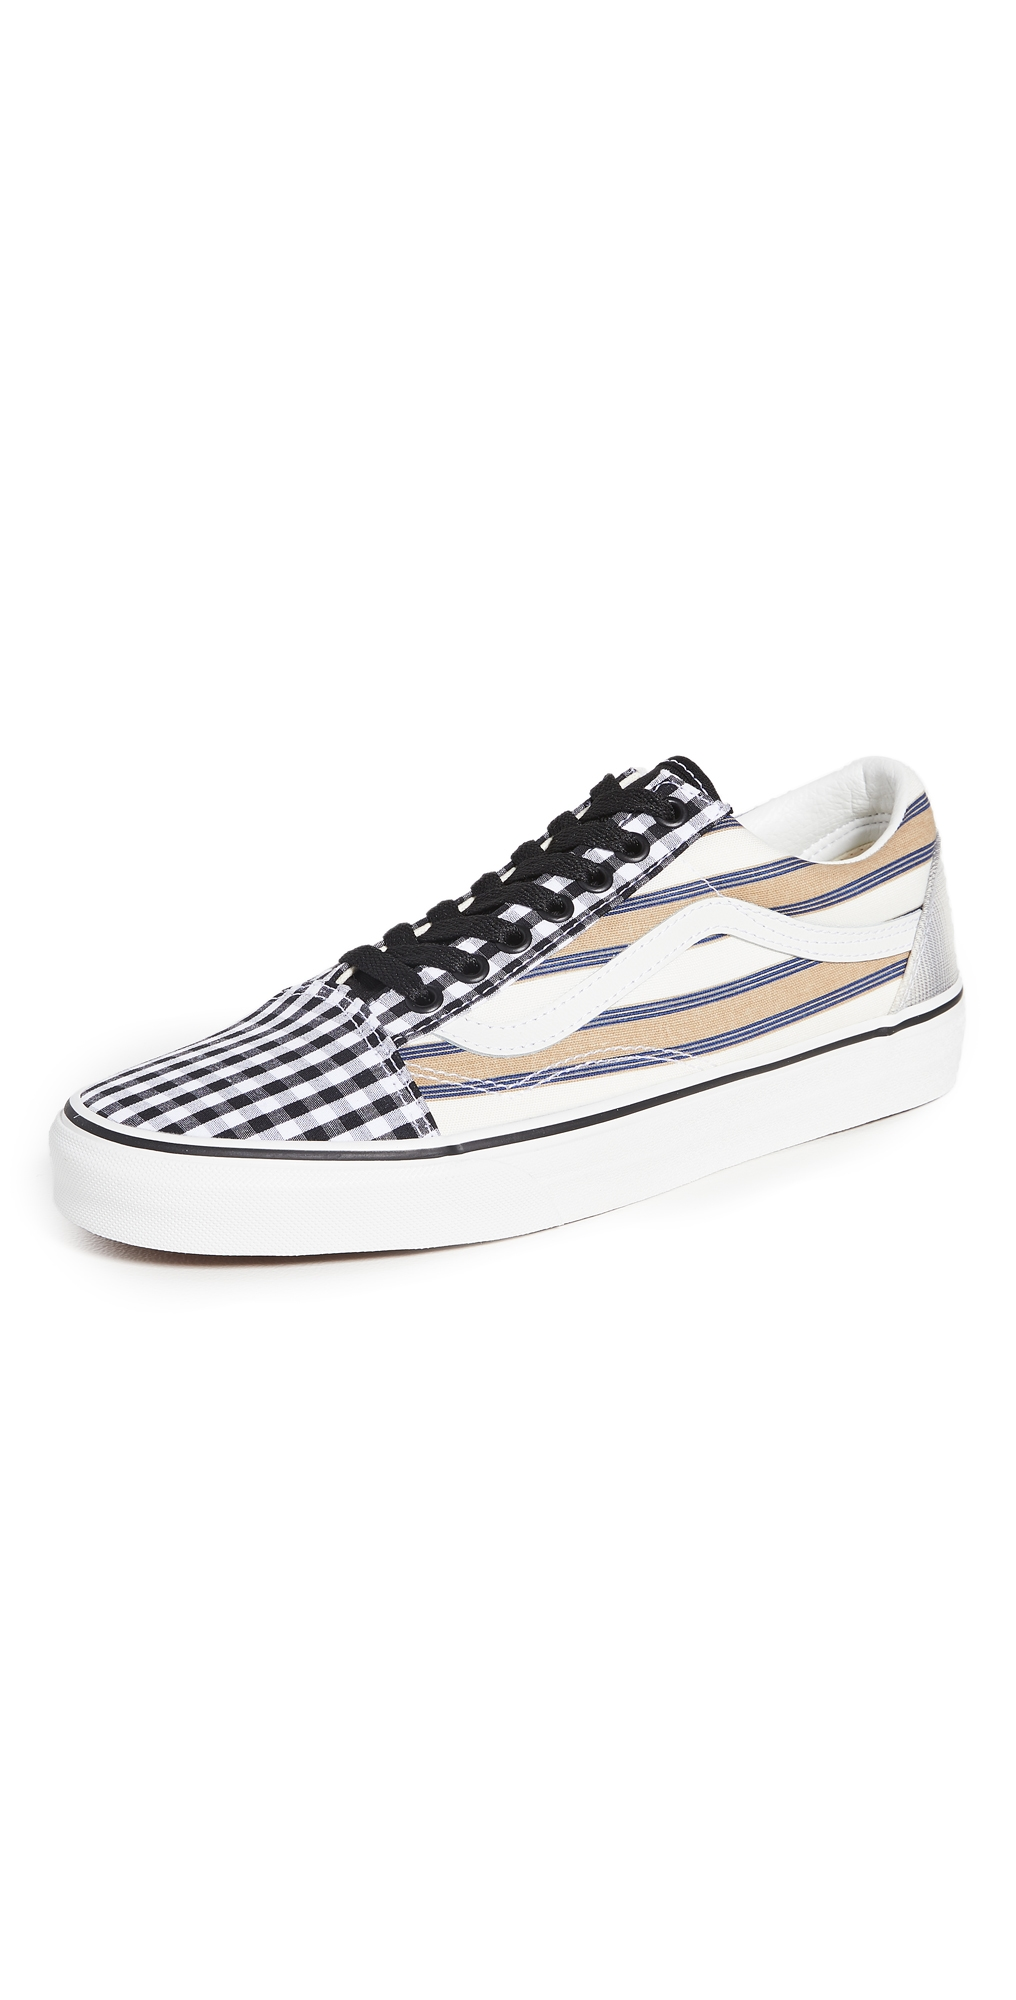 Vans Old Skool Prep Retro Sneakers